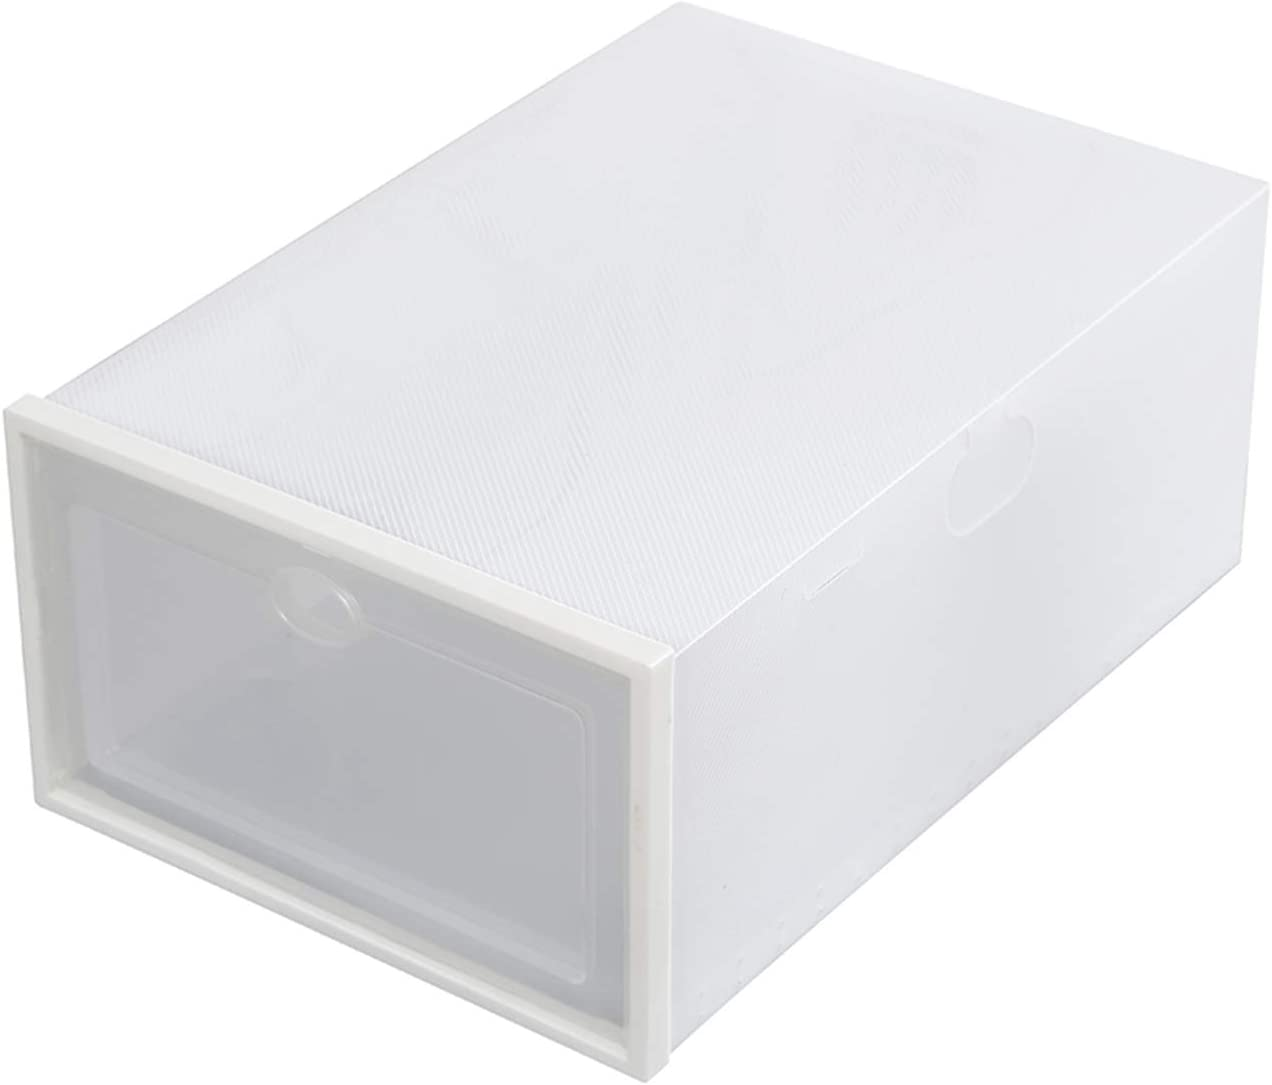 24 Pack Excellence Superior Shoe Storage Box Folding Clear Plastic Cl Organizer